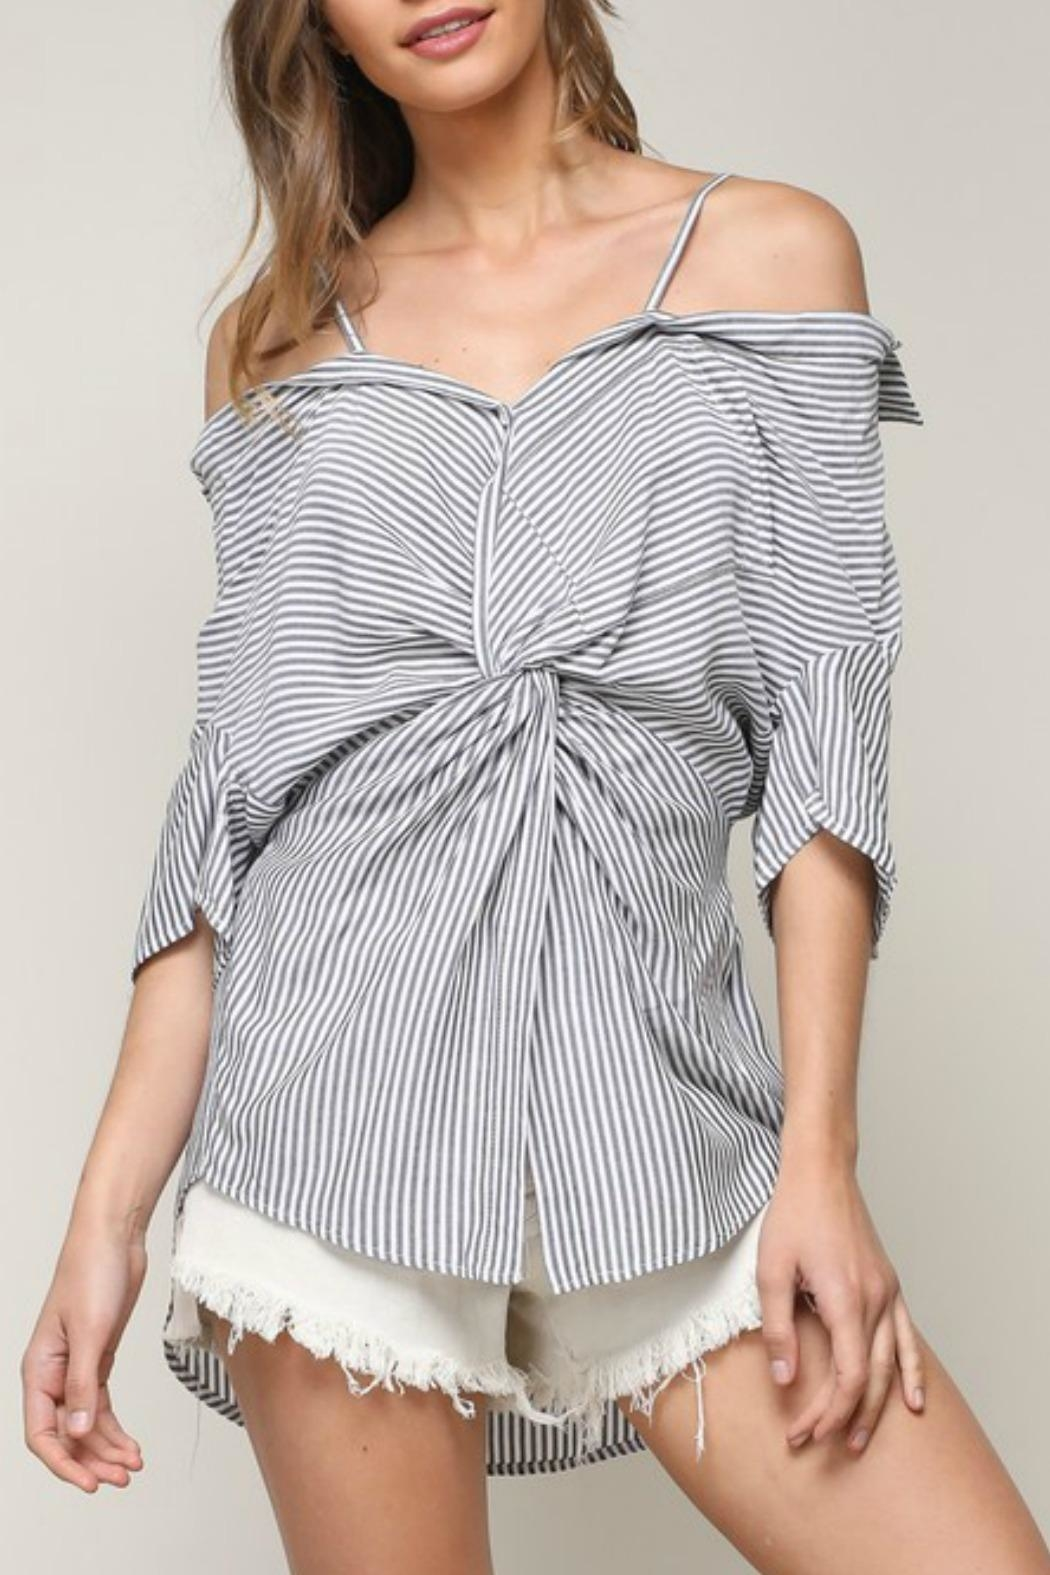 Mustard Seed Twisted Ots Shirt - Front Cropped Image